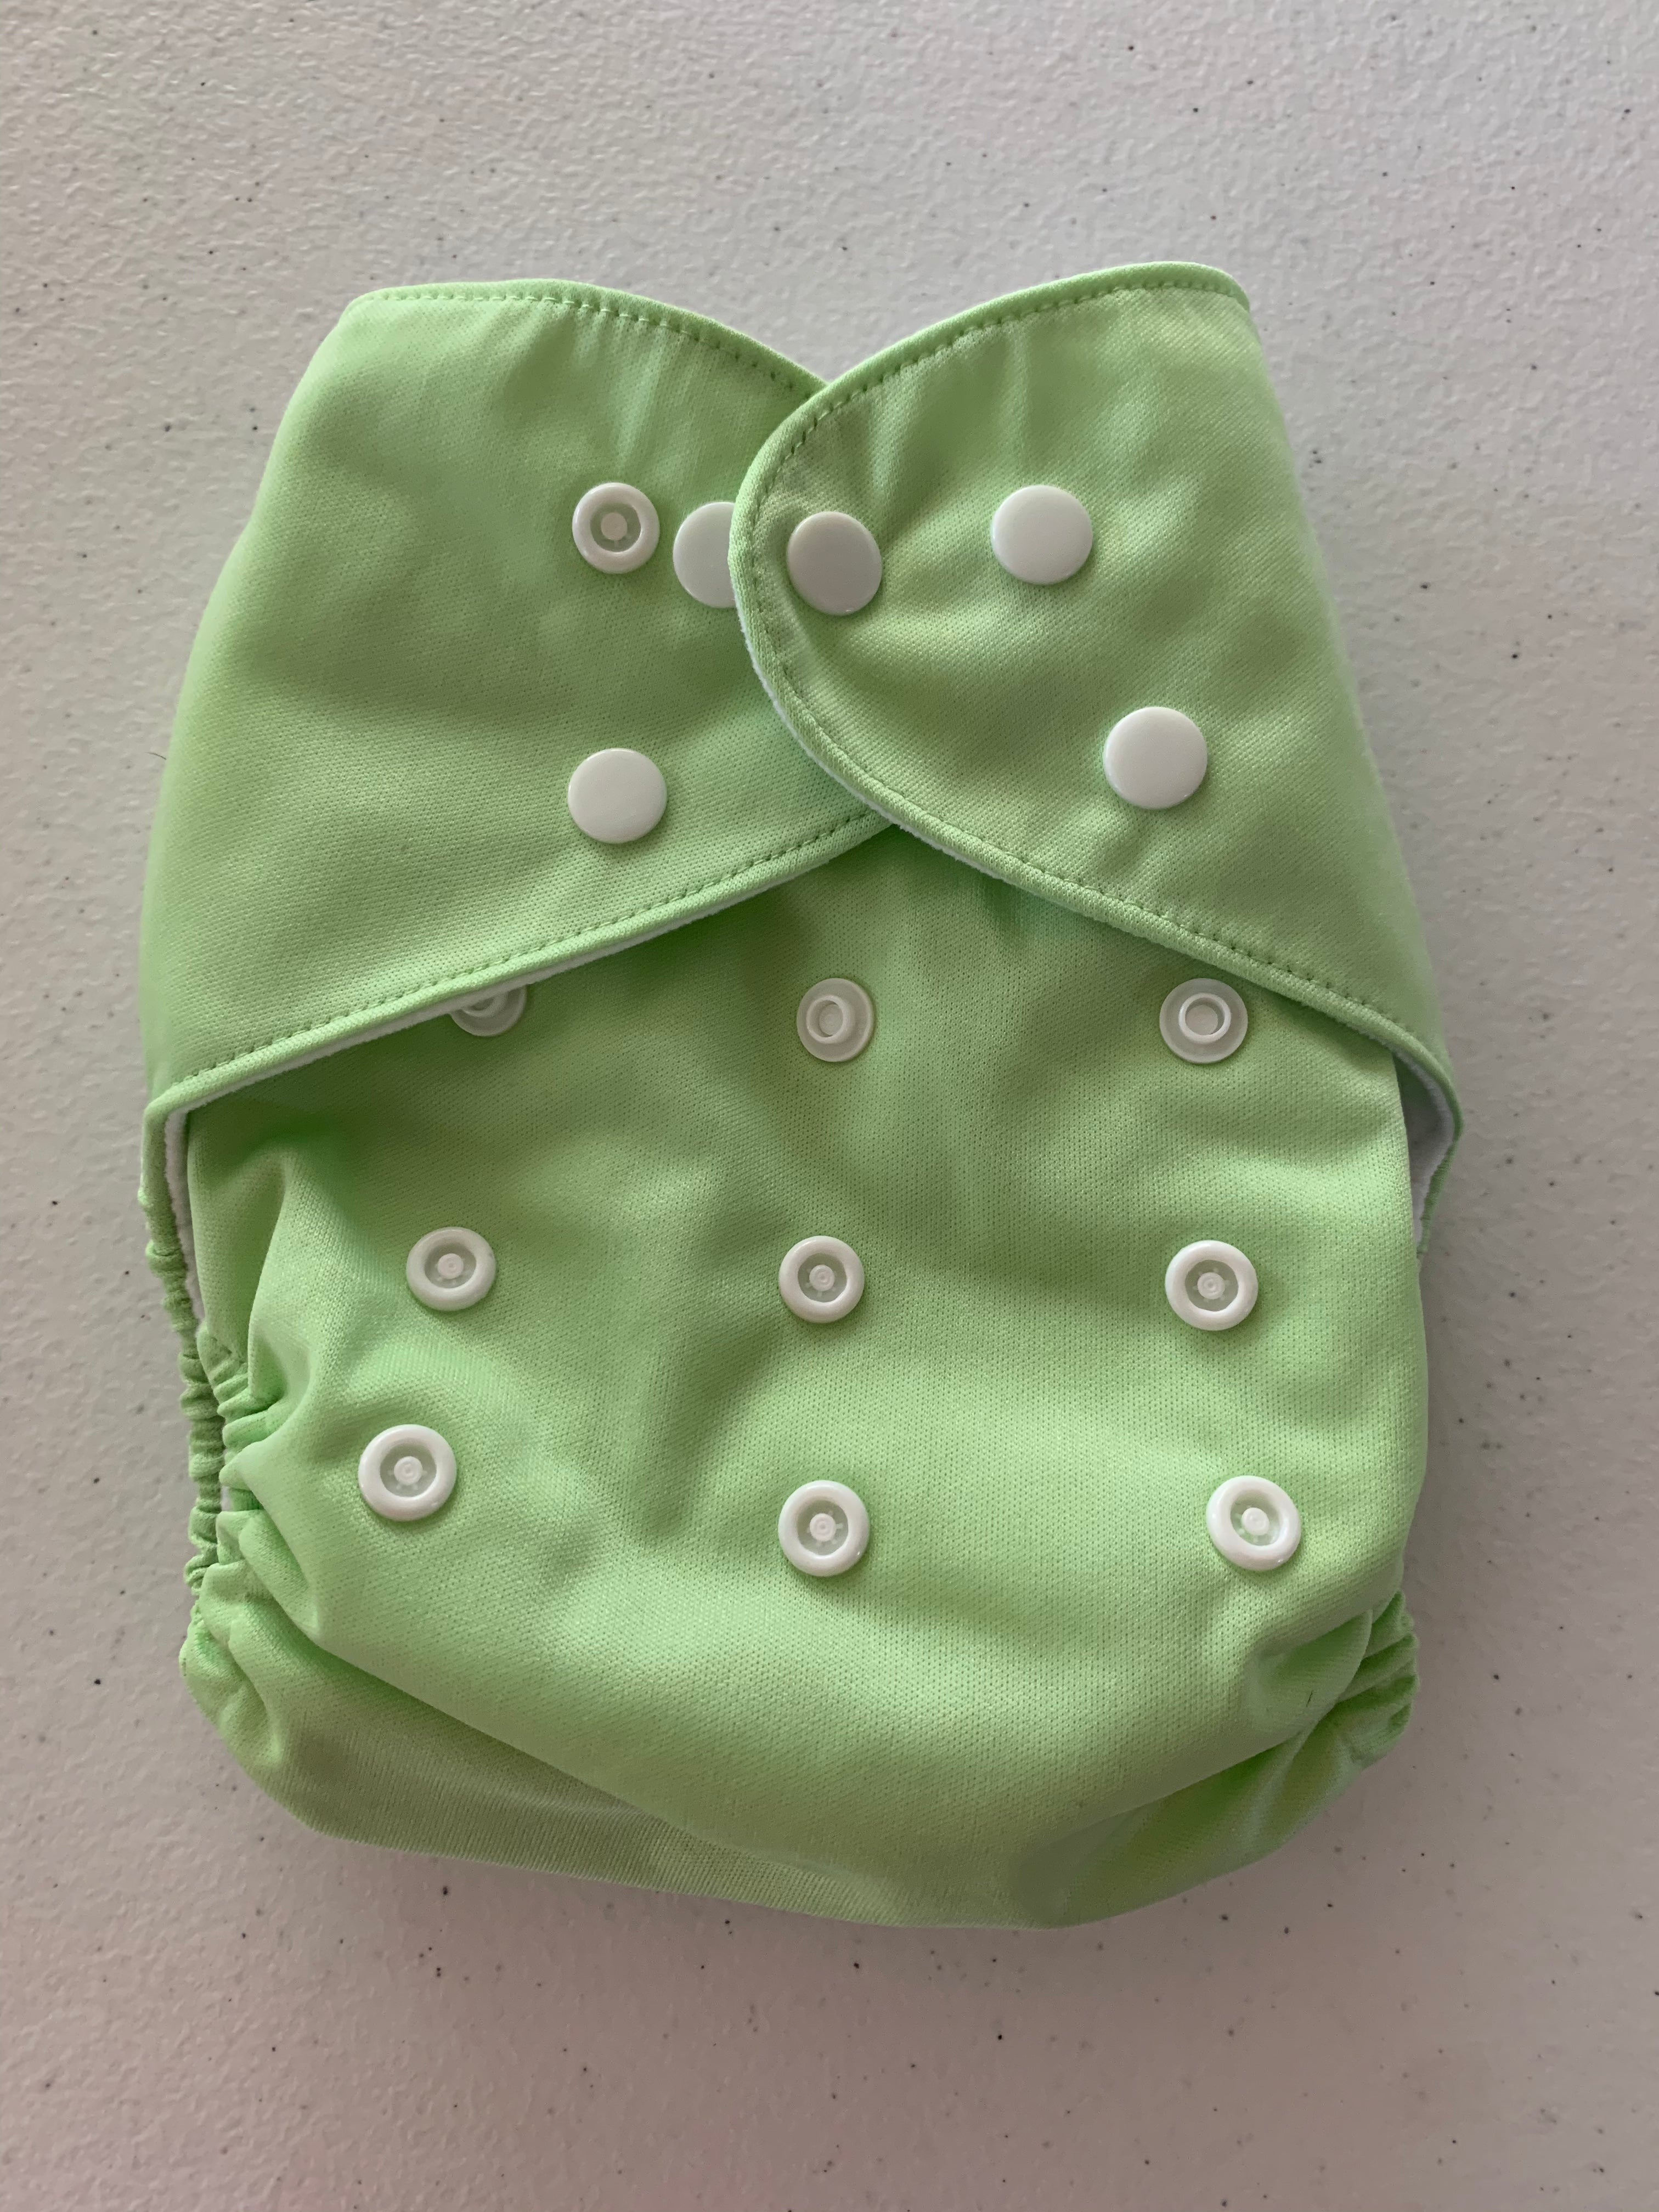 Unbranded cloth pocket diaper with bamboo insert. Lime green